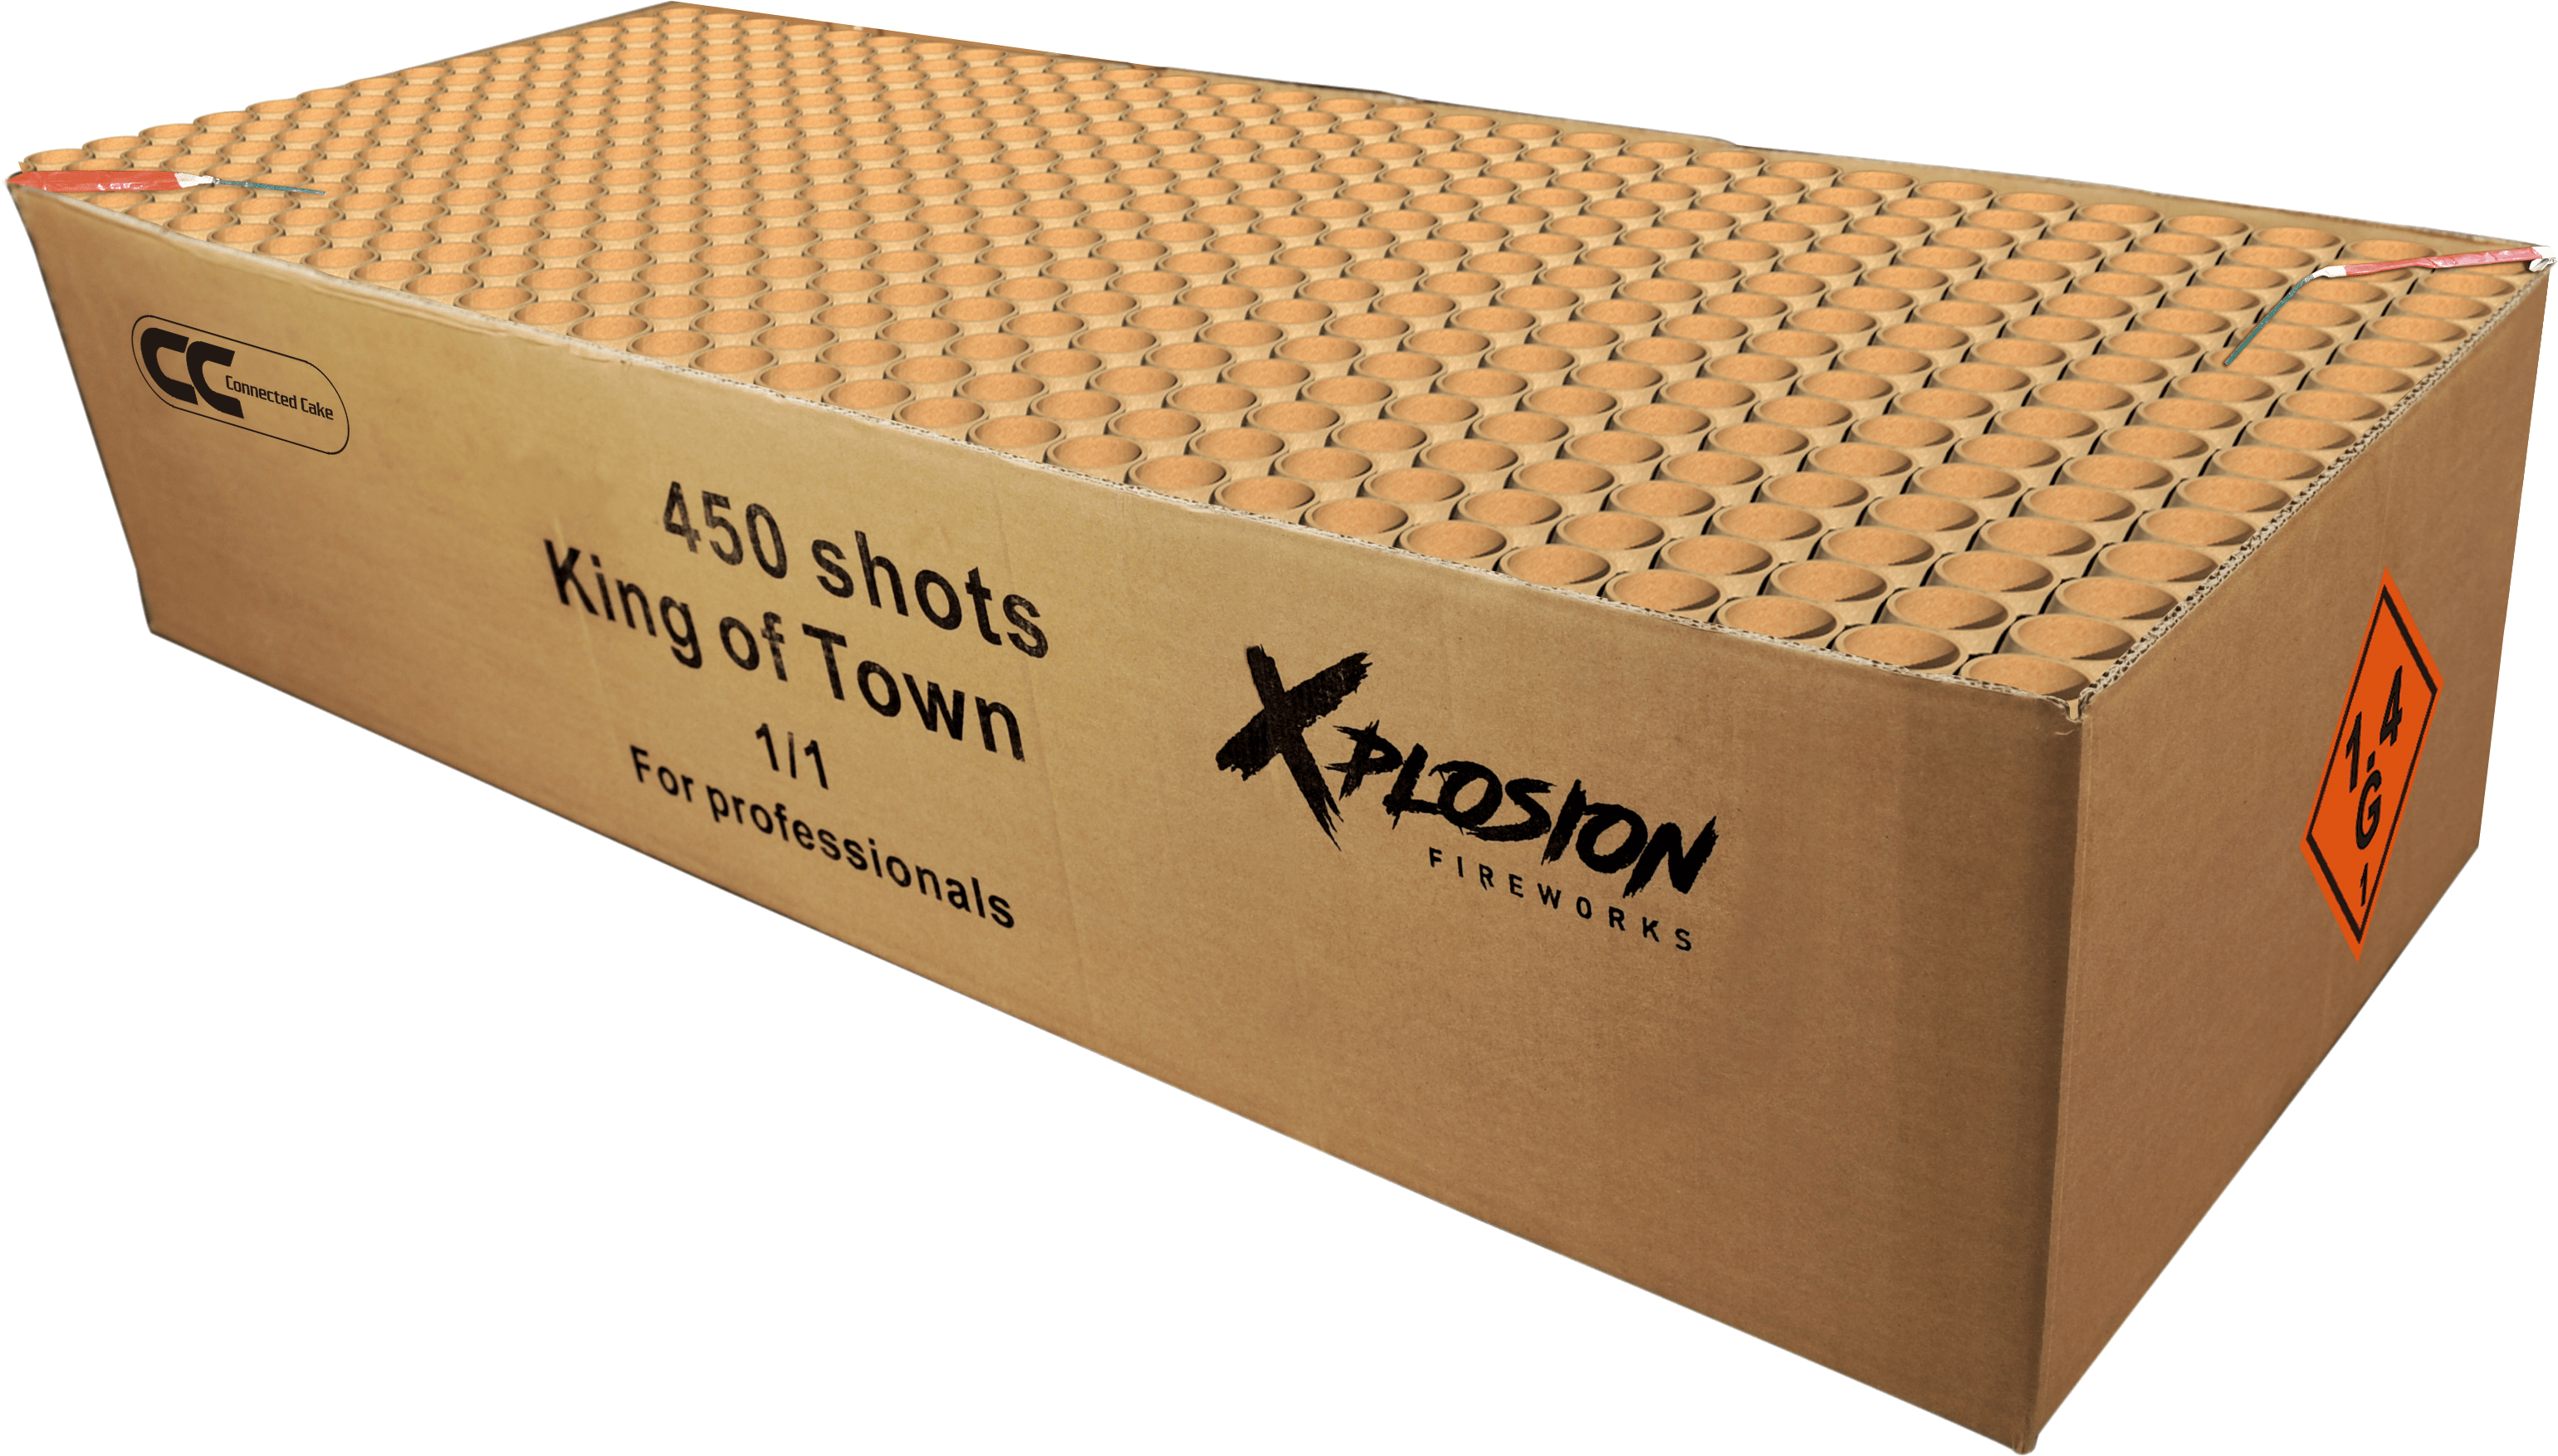 King of Town 450 shots